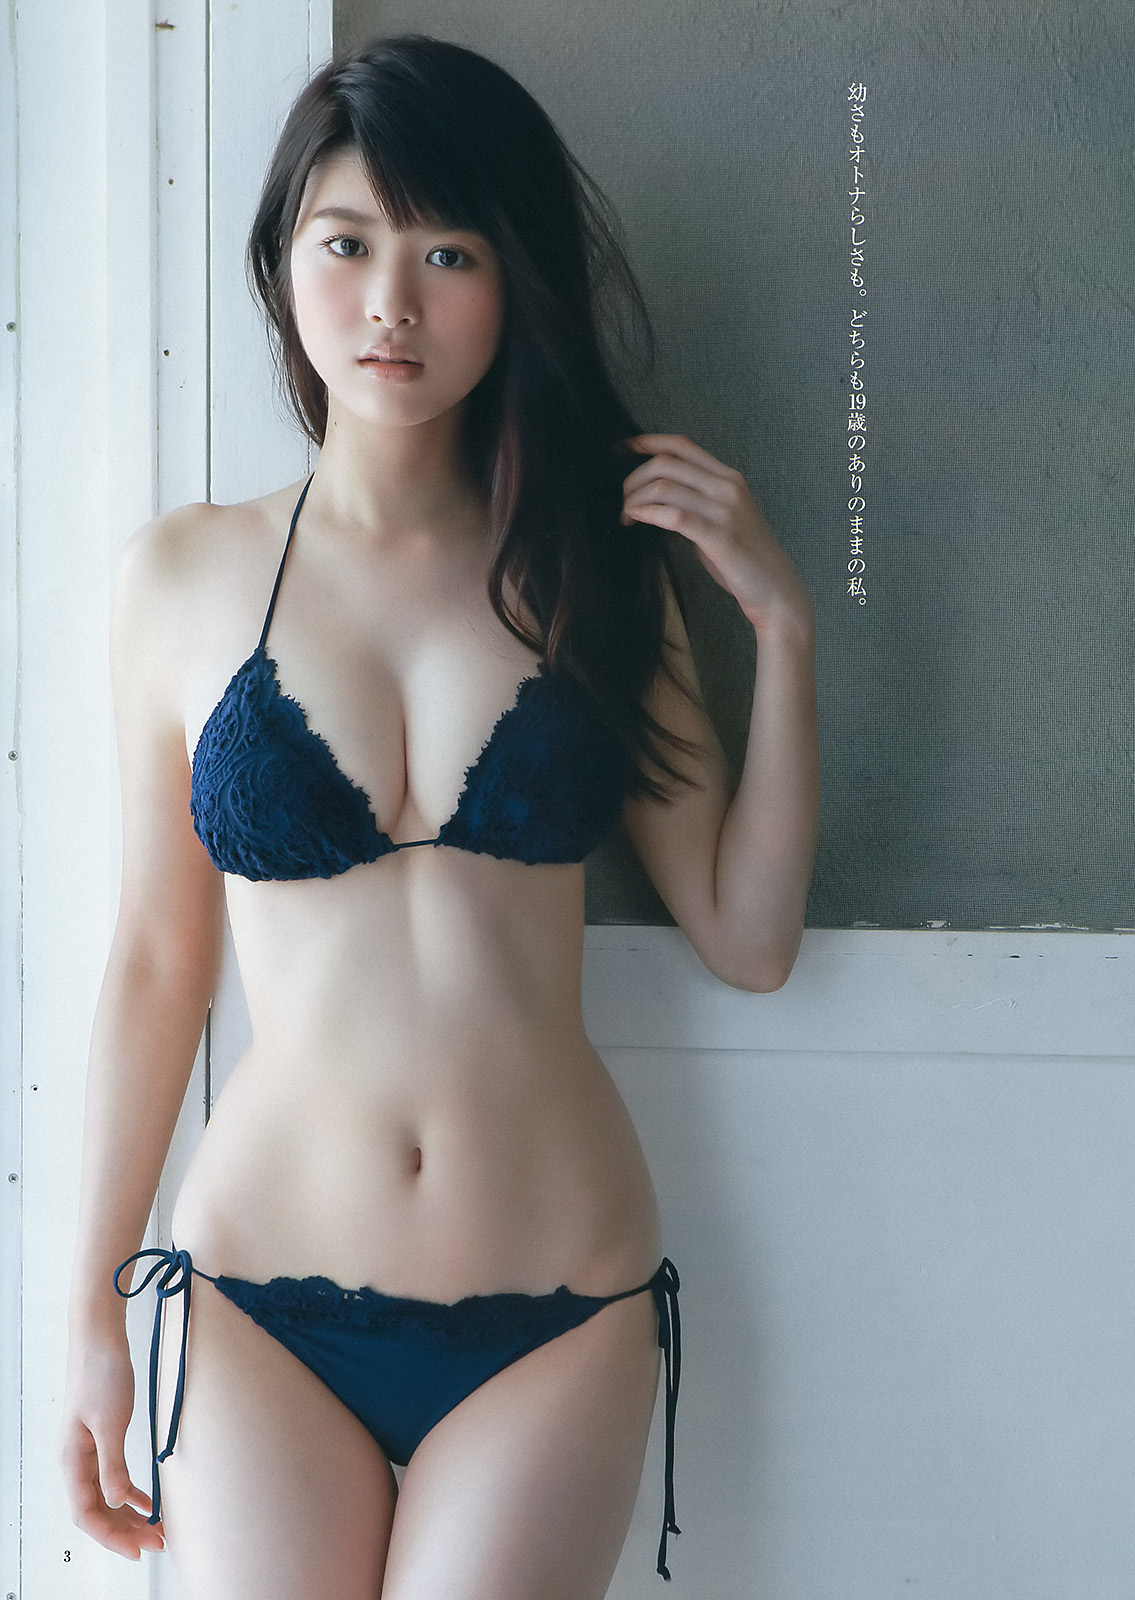 Japanese-model-and-actress-Fumika-Baba-www.ohfree.net-029 Japanese model and actress Fumika Baba 馬場 ふみか nude photos leaked